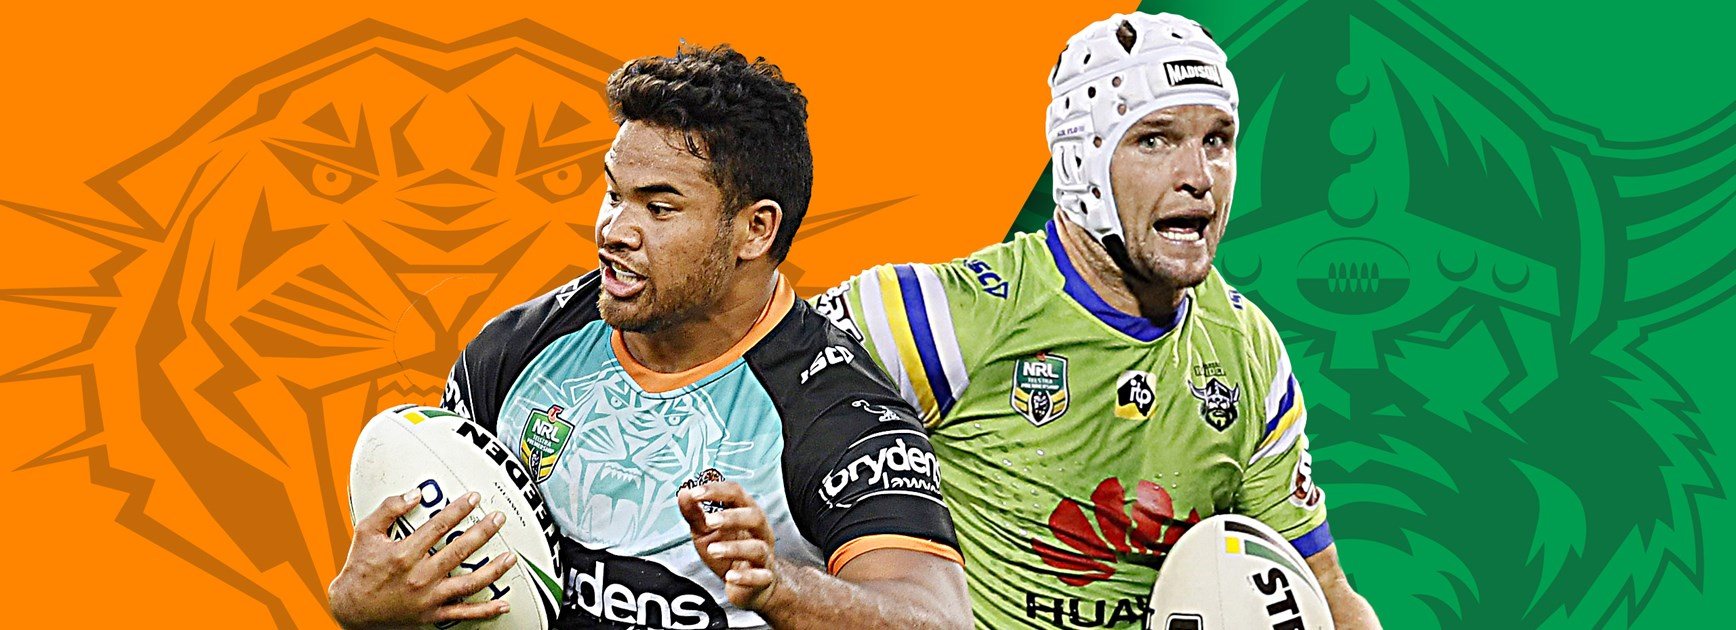 Wests Tigers v Raiders: Reynolds ruled out; Hodgson back via bench